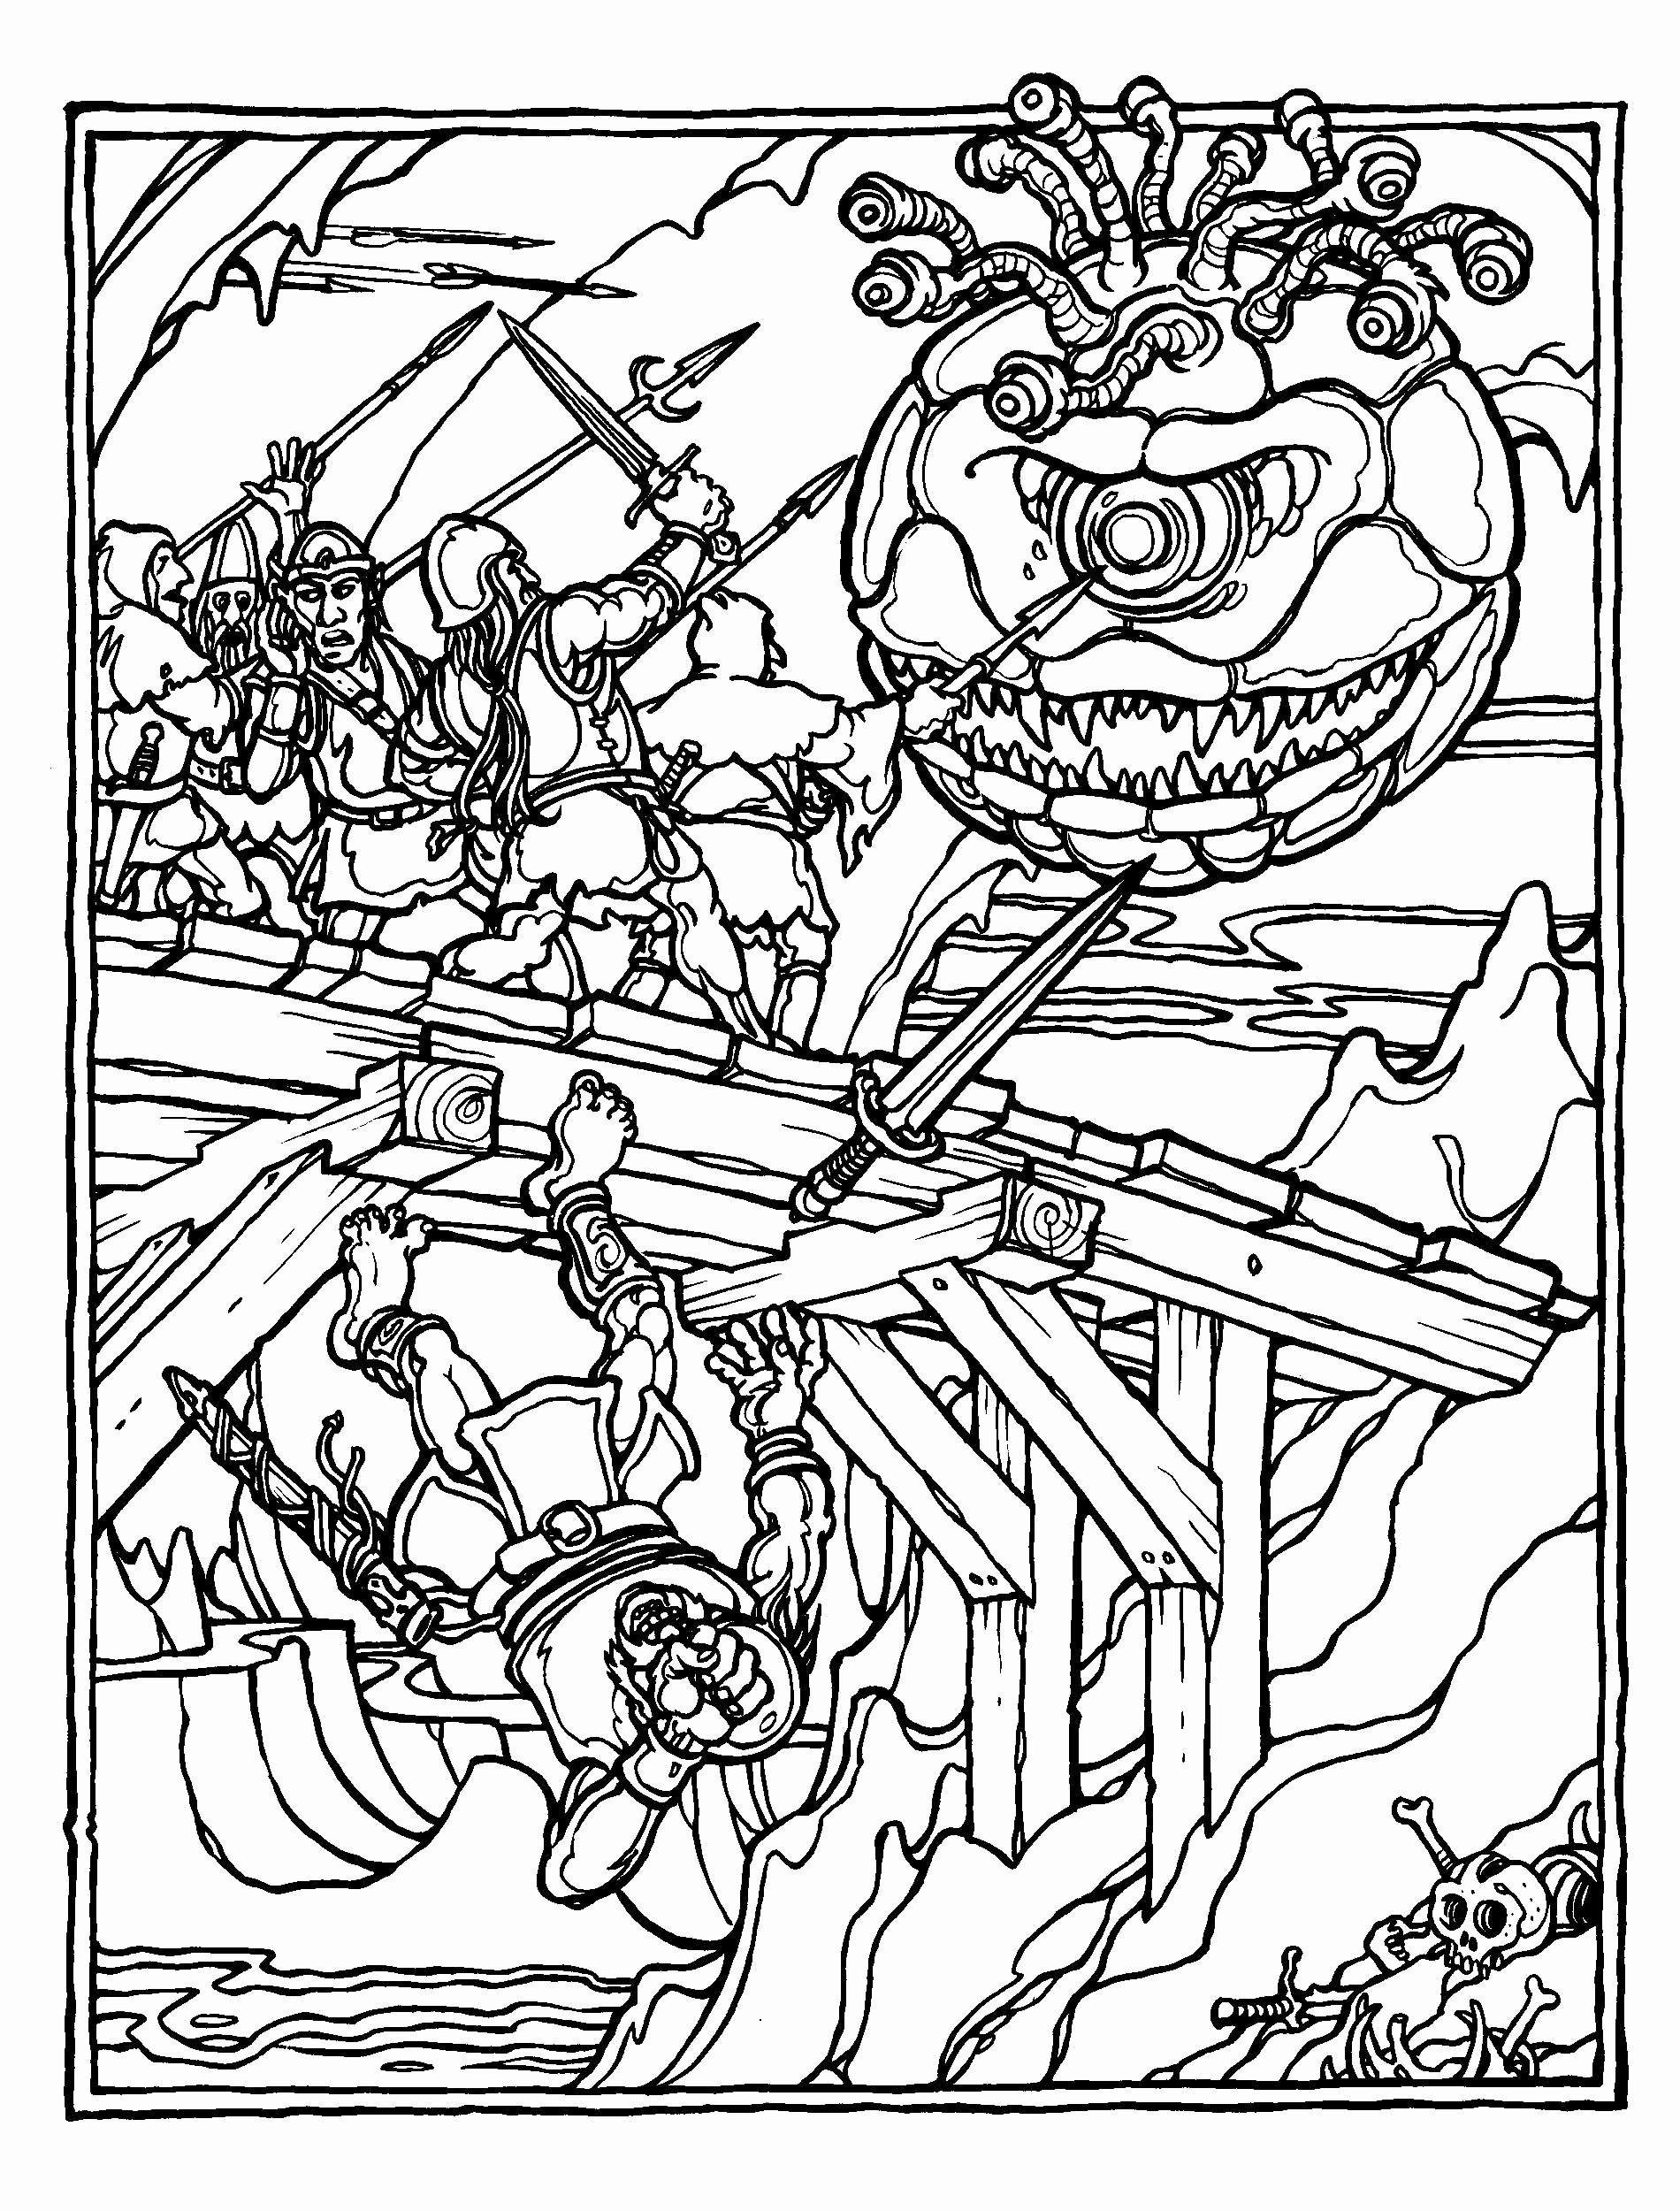 Dungeons And Dragons Coloring Book Beautiful 06cavern 1 900 2 500 Pixels In 2020 Dragon Coloring Page Online Coloring Pages Dungeons And Dragons